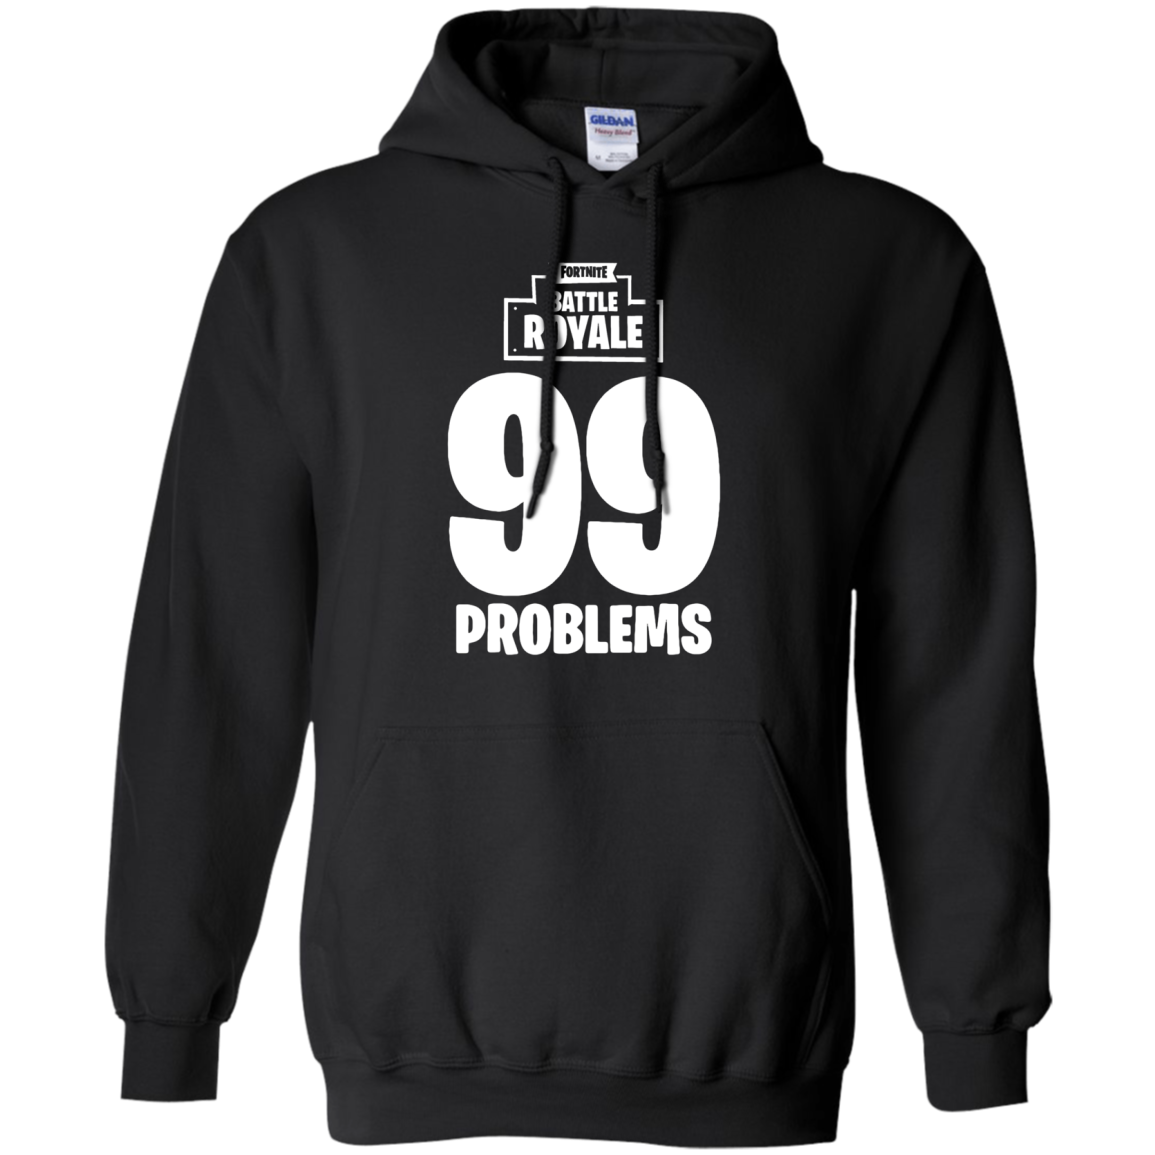 Fortnite Battle Royale 99 Problems T Shirt Hoodie Sweater